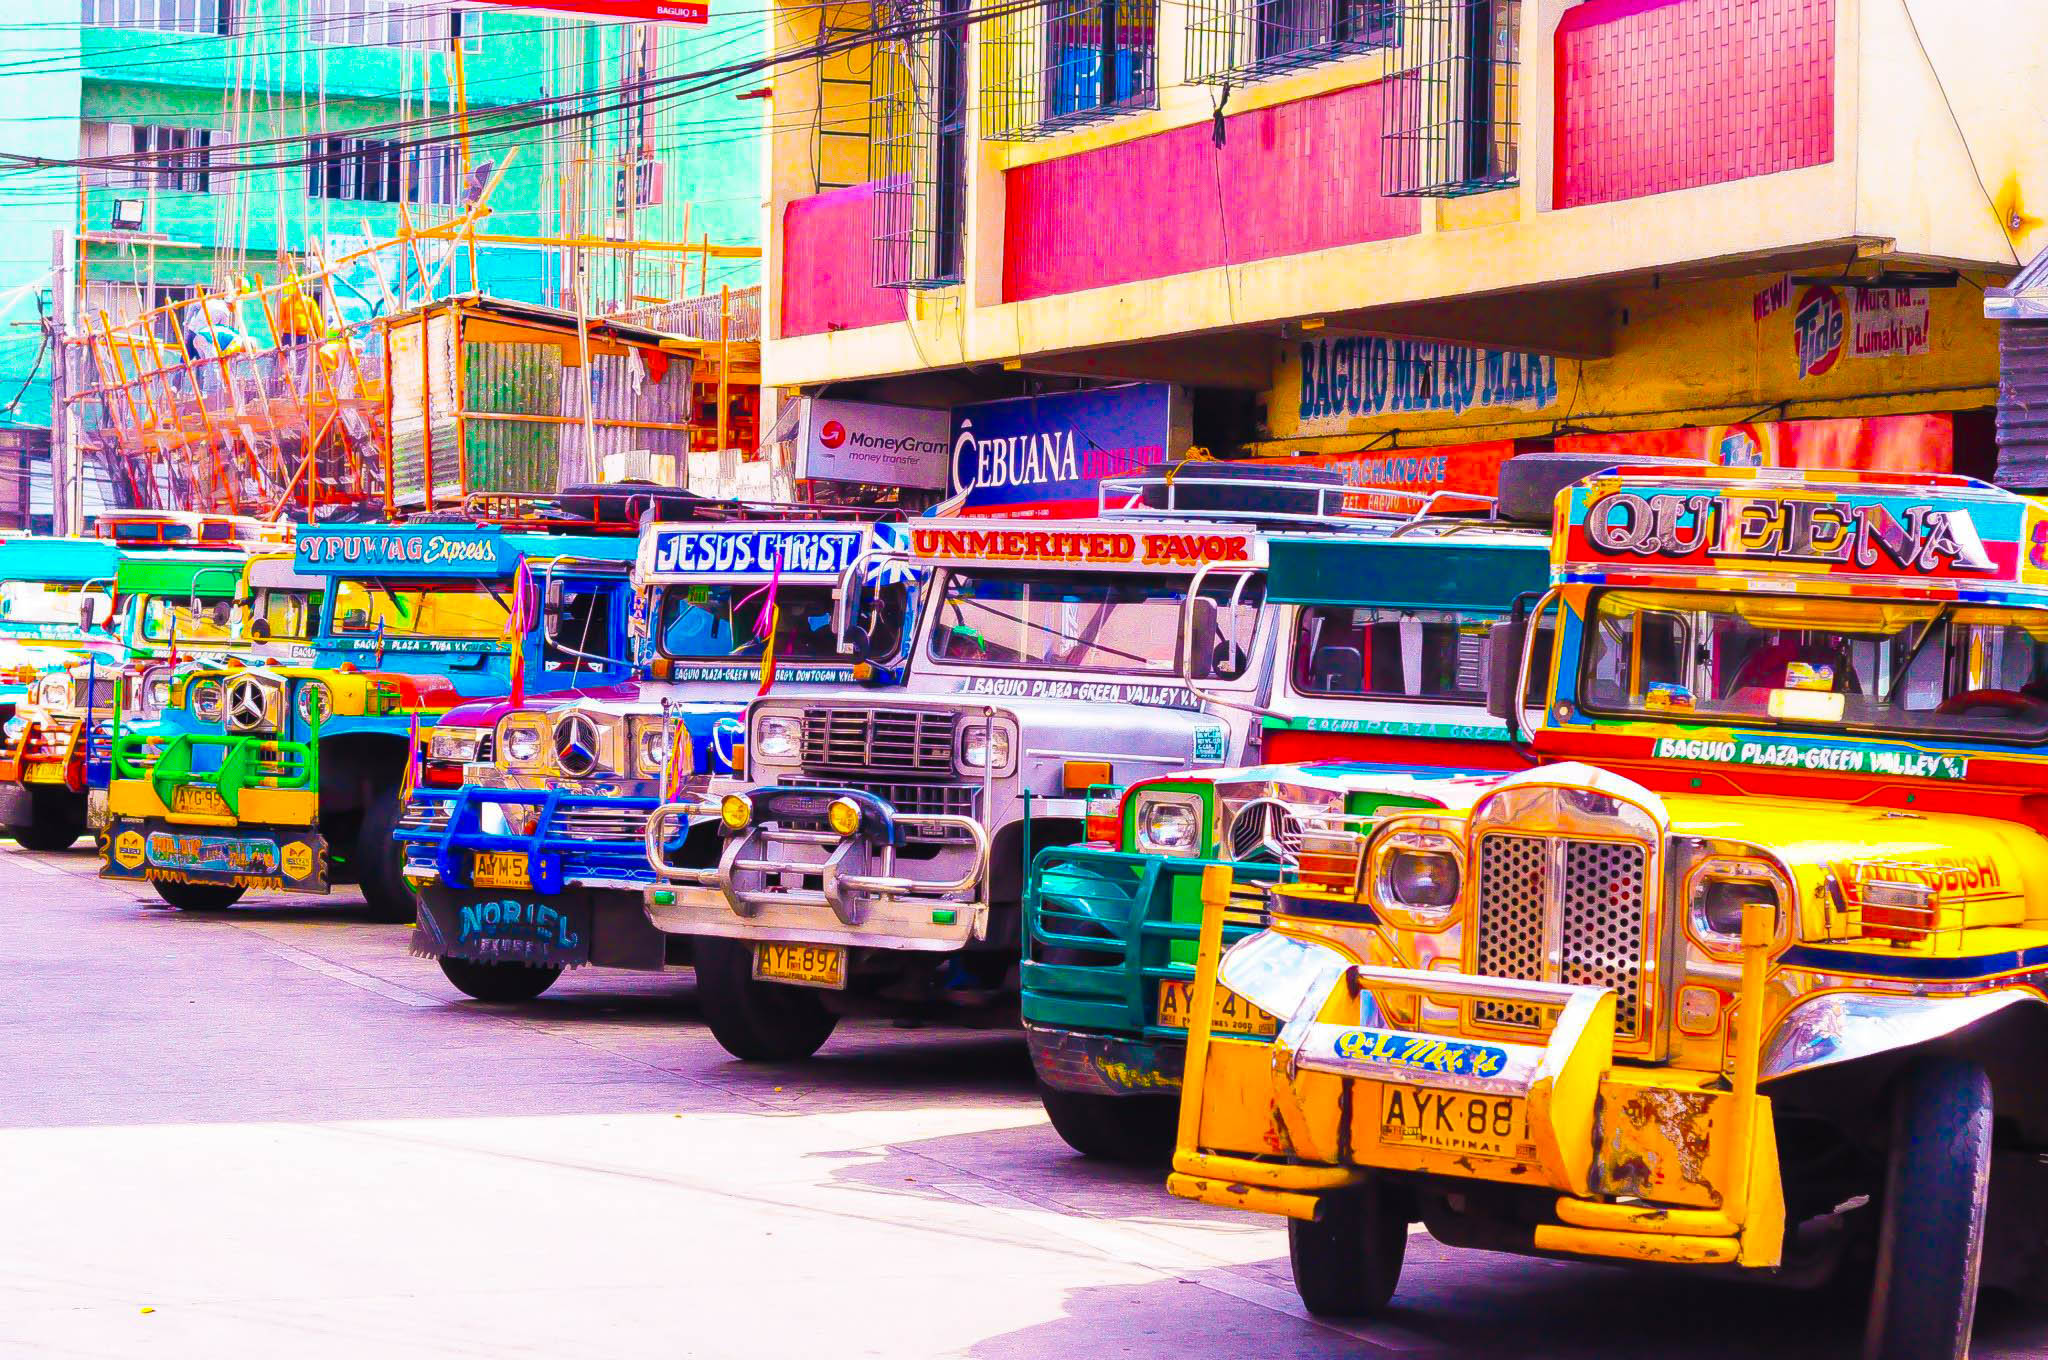 Array of colorful jeepneys parked before buildings